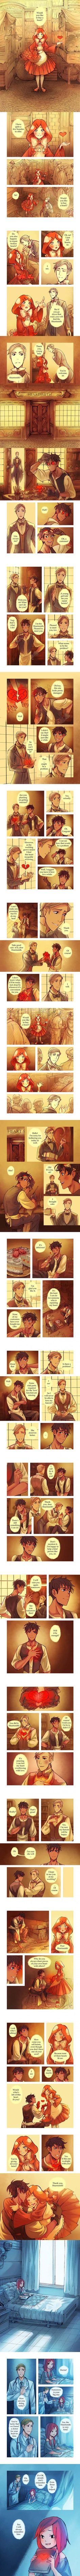 The Heartsmith comic. So cute! --> The Heartsmith looks like Percy Jackson with Leo's skin color and personality. Kind of sad when I think about it because I can see Leo doing something like this. Beste Comics, Cute Stories, Short Stories, Cute Love Stories, Beautiful Stories, Plot Twist, Faith In Humanity, Comic Strips, Make Me Smile